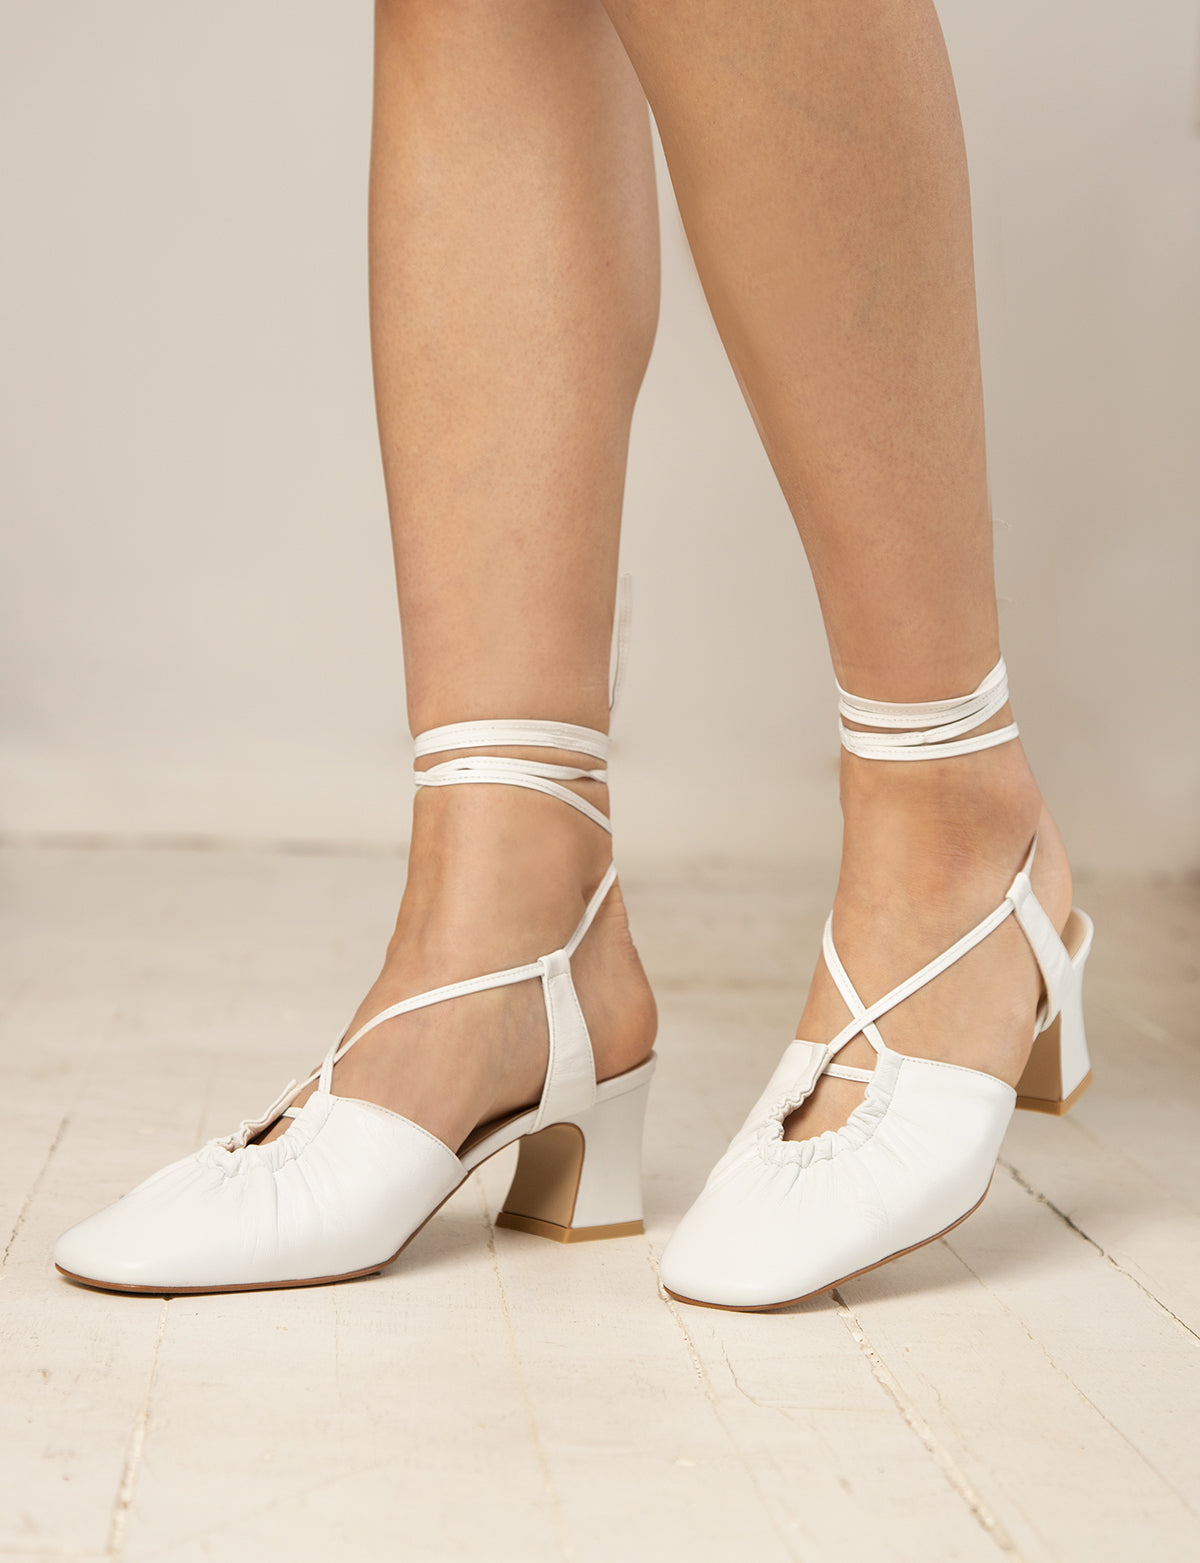 White Ankle-Tie Heeled Sandals